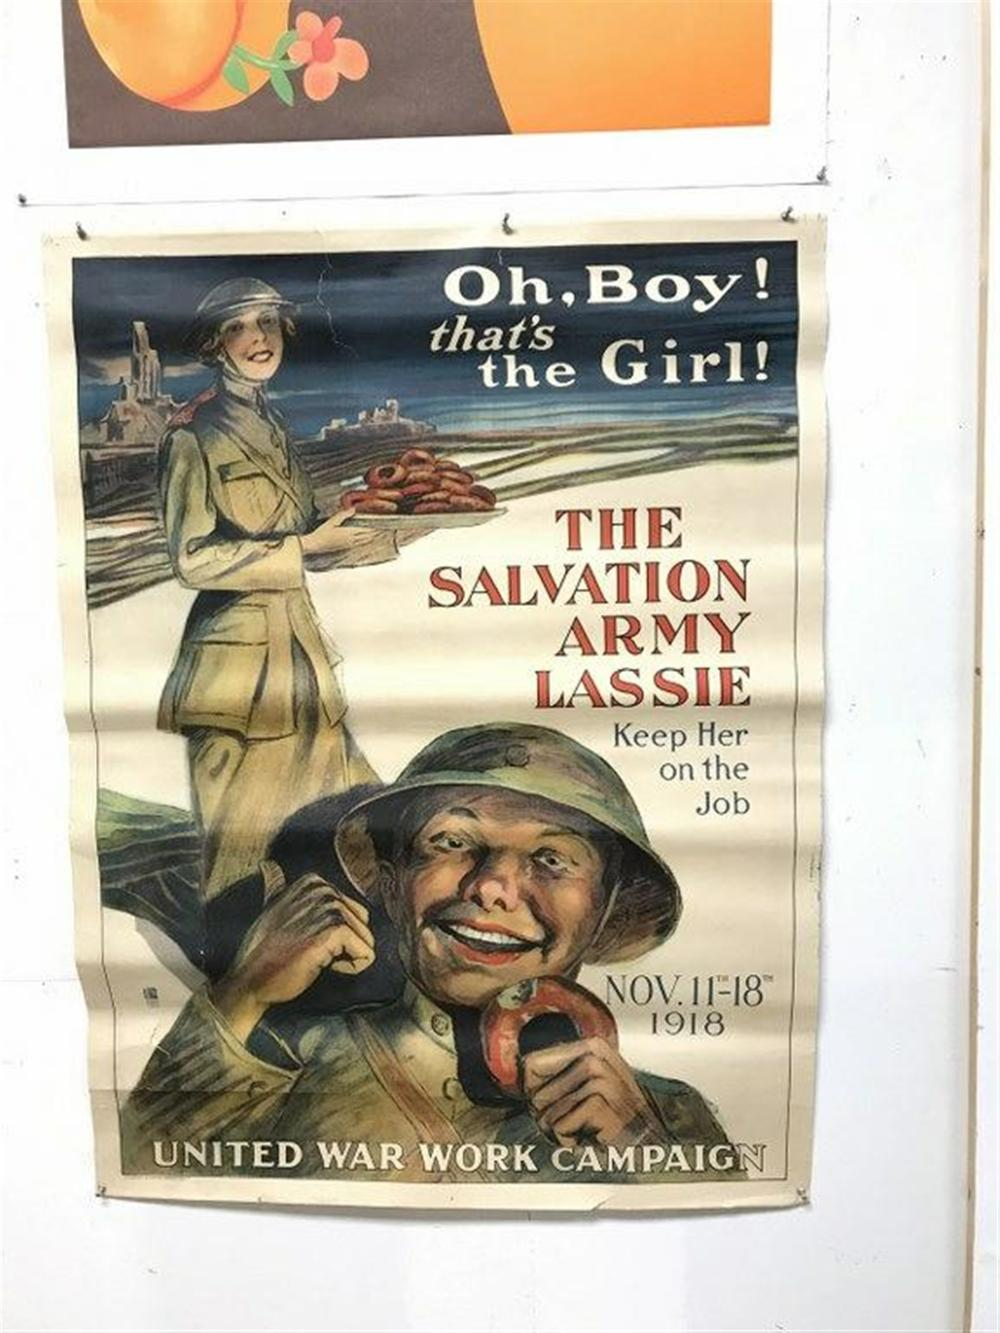 "POSTER- WW I, UNITED WAR WORK CAMPAIGN, GREAT GRAPHICS, SOME TEARS IN PAPER ON TOP AND BOTTOM BORDERS, POSTER MEASURES 40"" X 29"", CAN SHIP ROLLED."